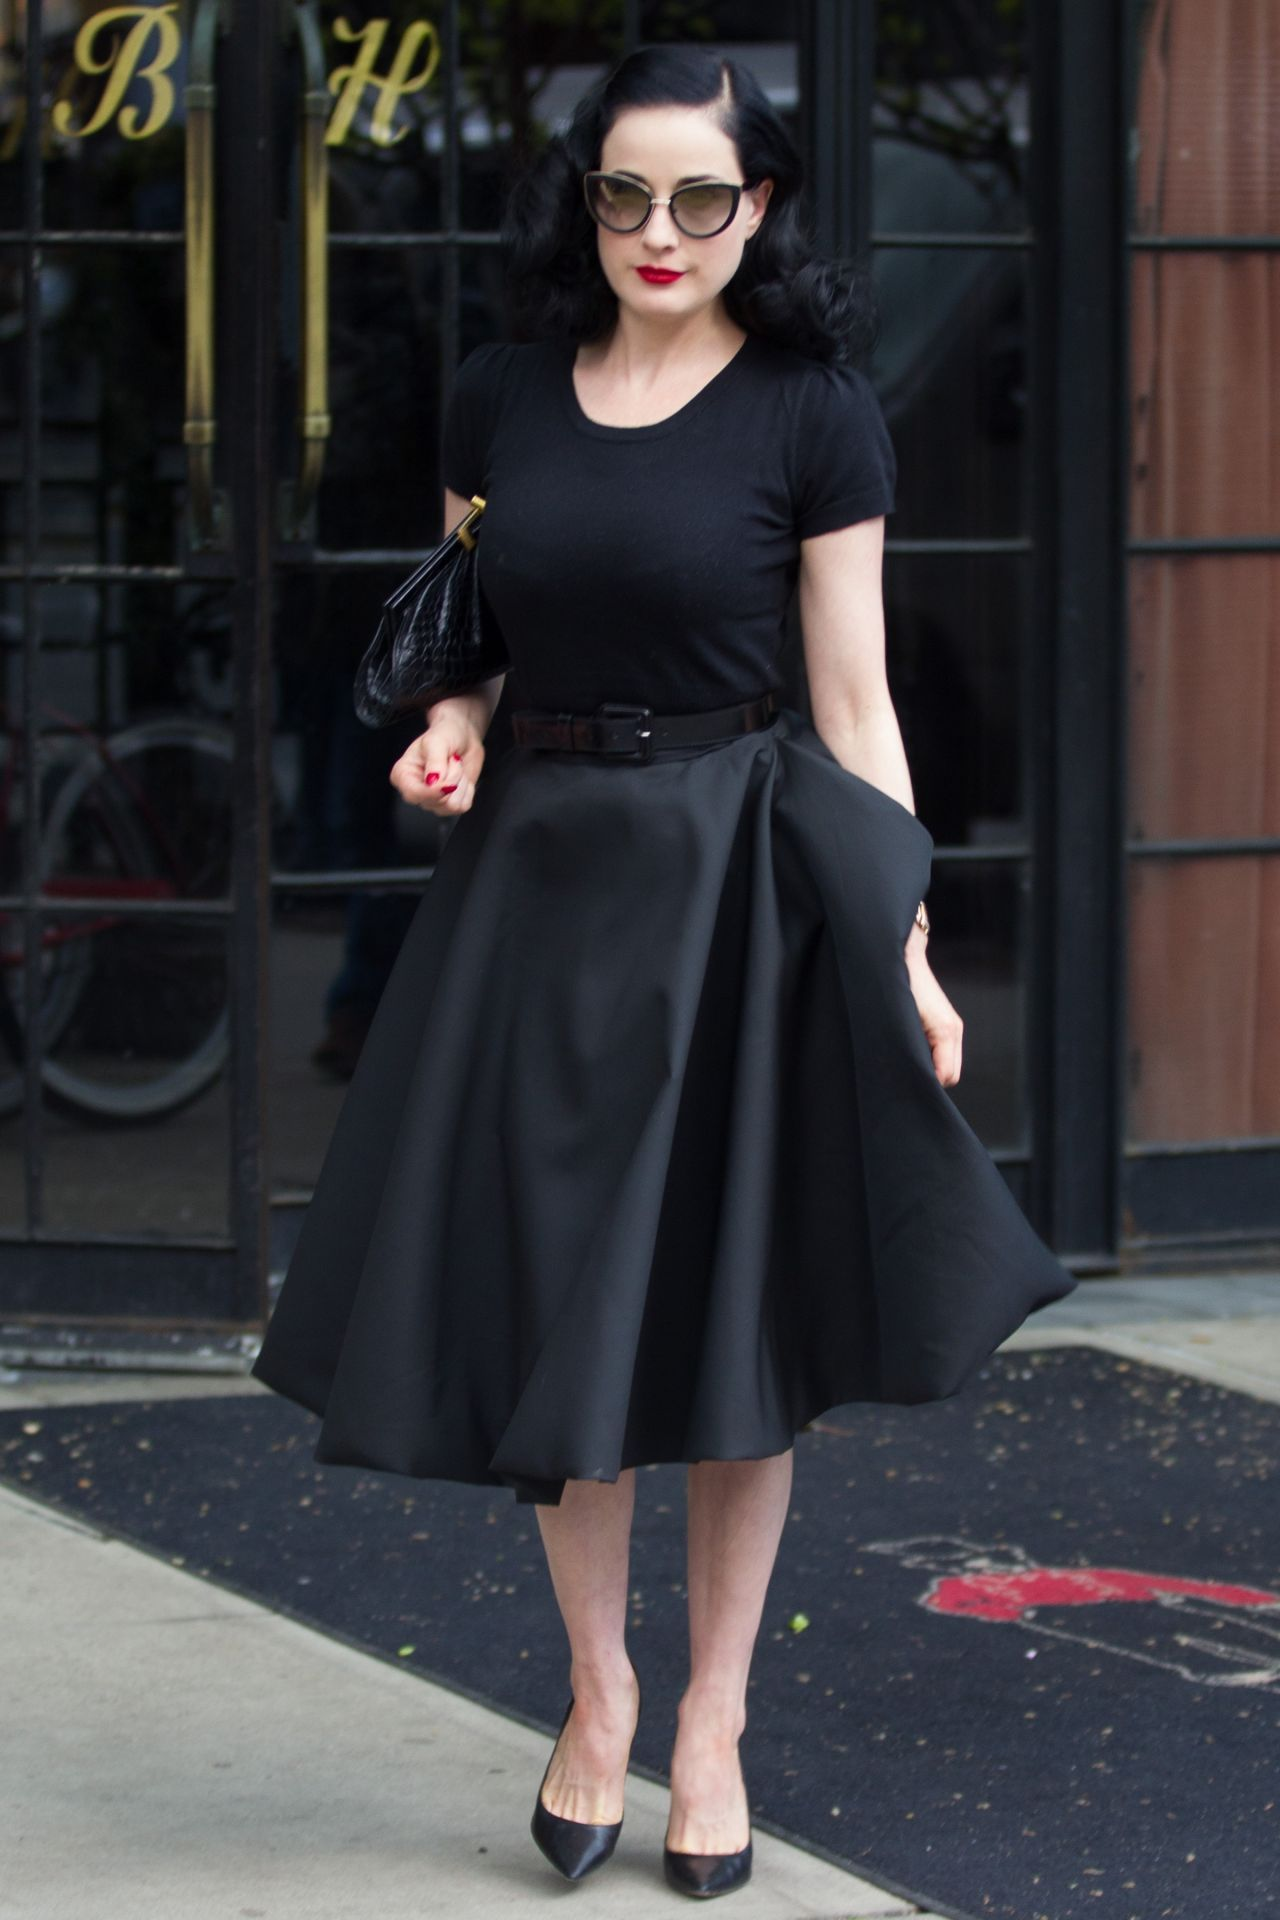 e1f33e6f52 Dita Von Teese All in Black - Leaving Her Hotel in New York City - May 2014